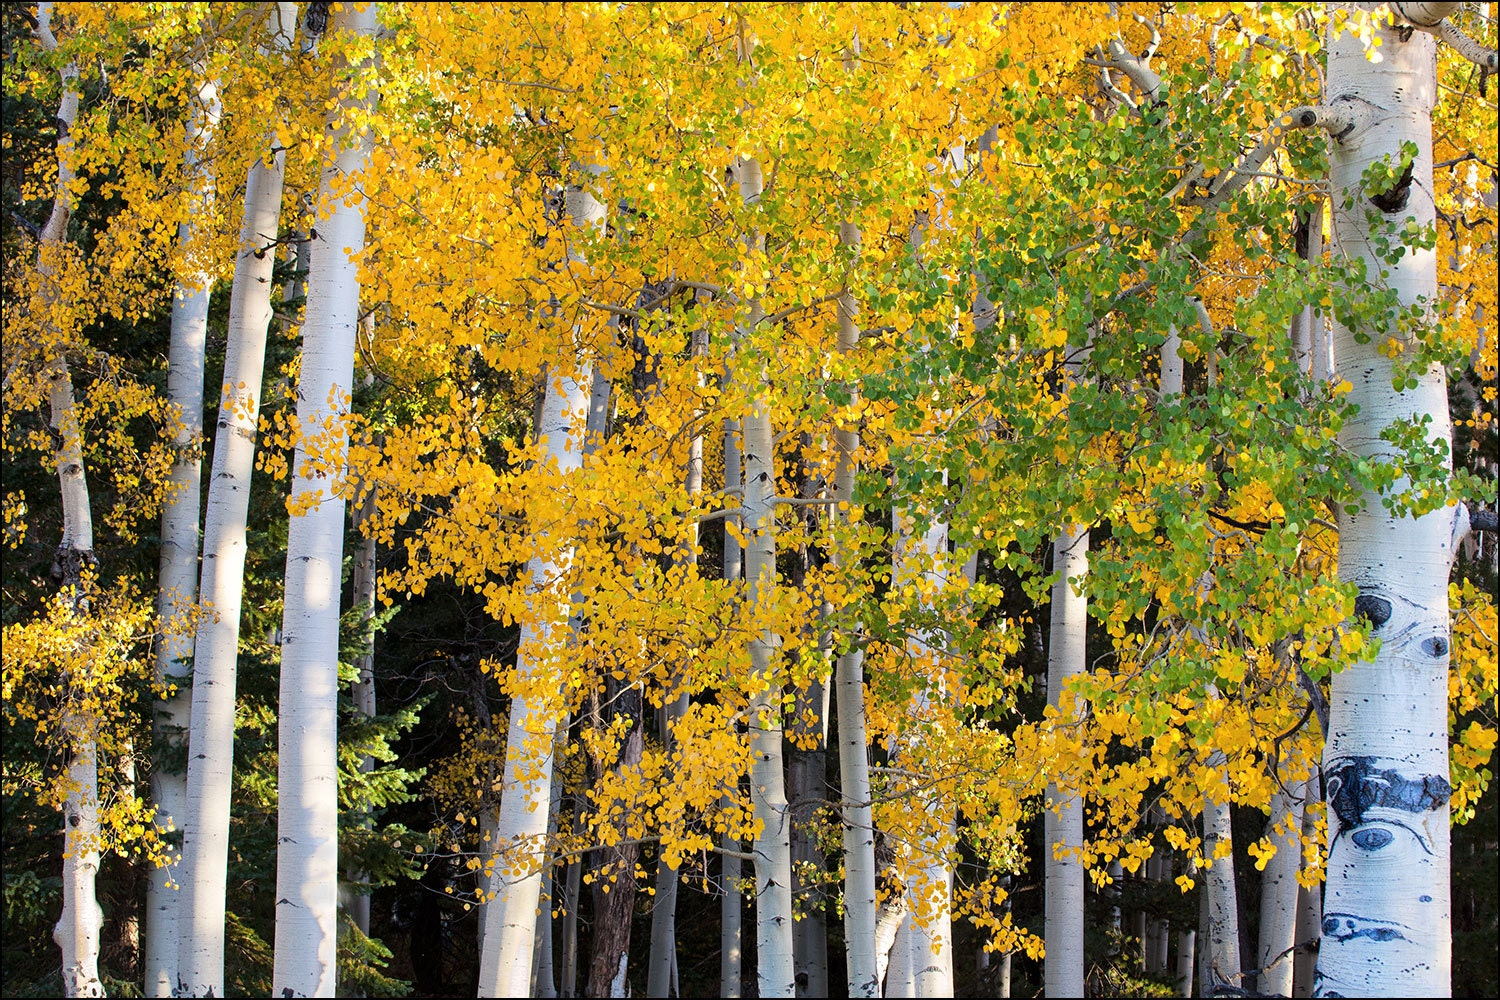 Yellow Aspen trees during fall colors and the changing of the